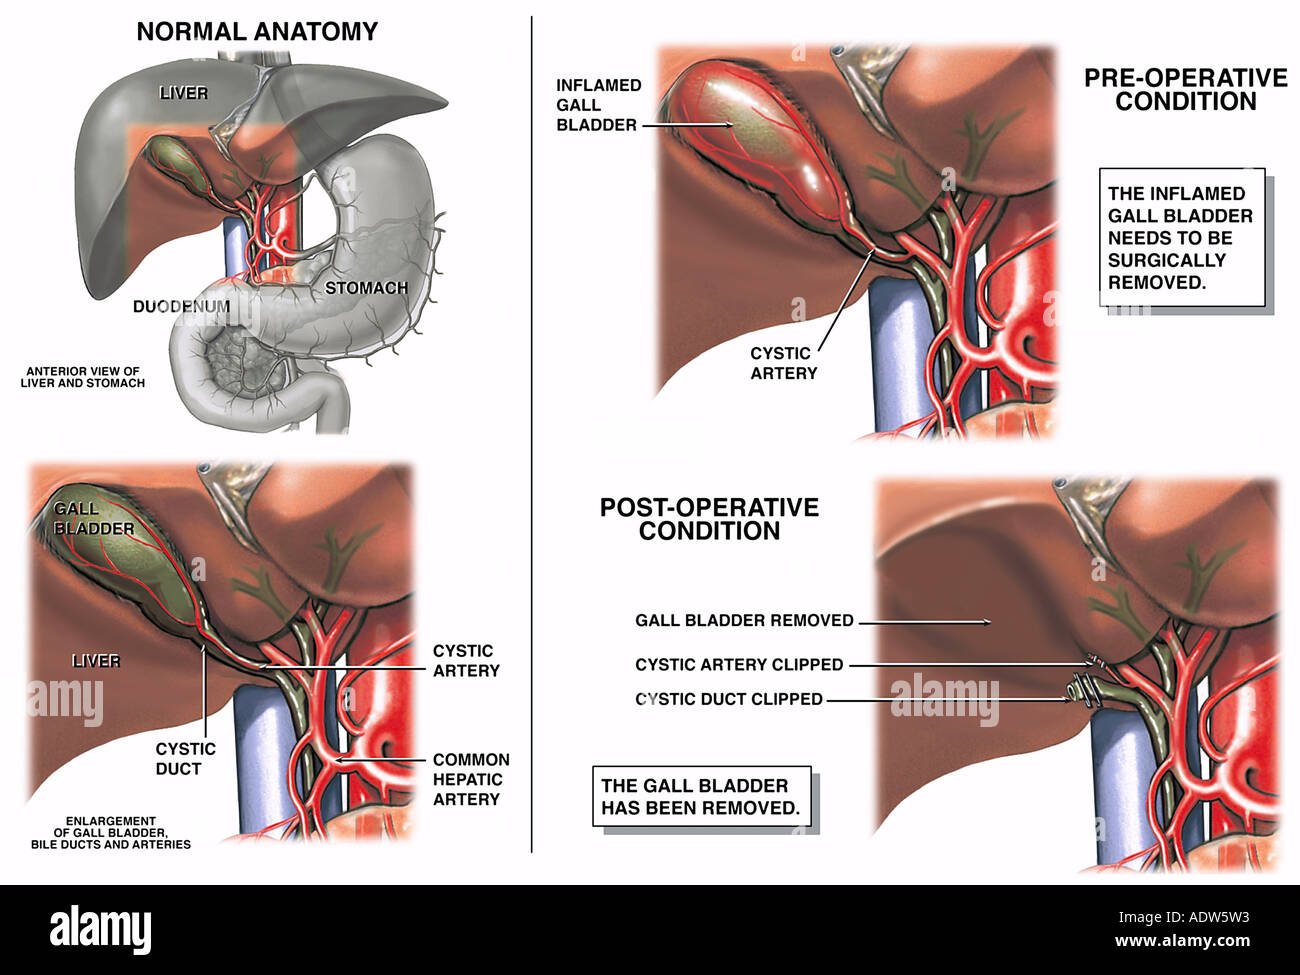 Cholecystectomy Gallbladder Removal Surgery Stock Photo: 7712082 - Alamy